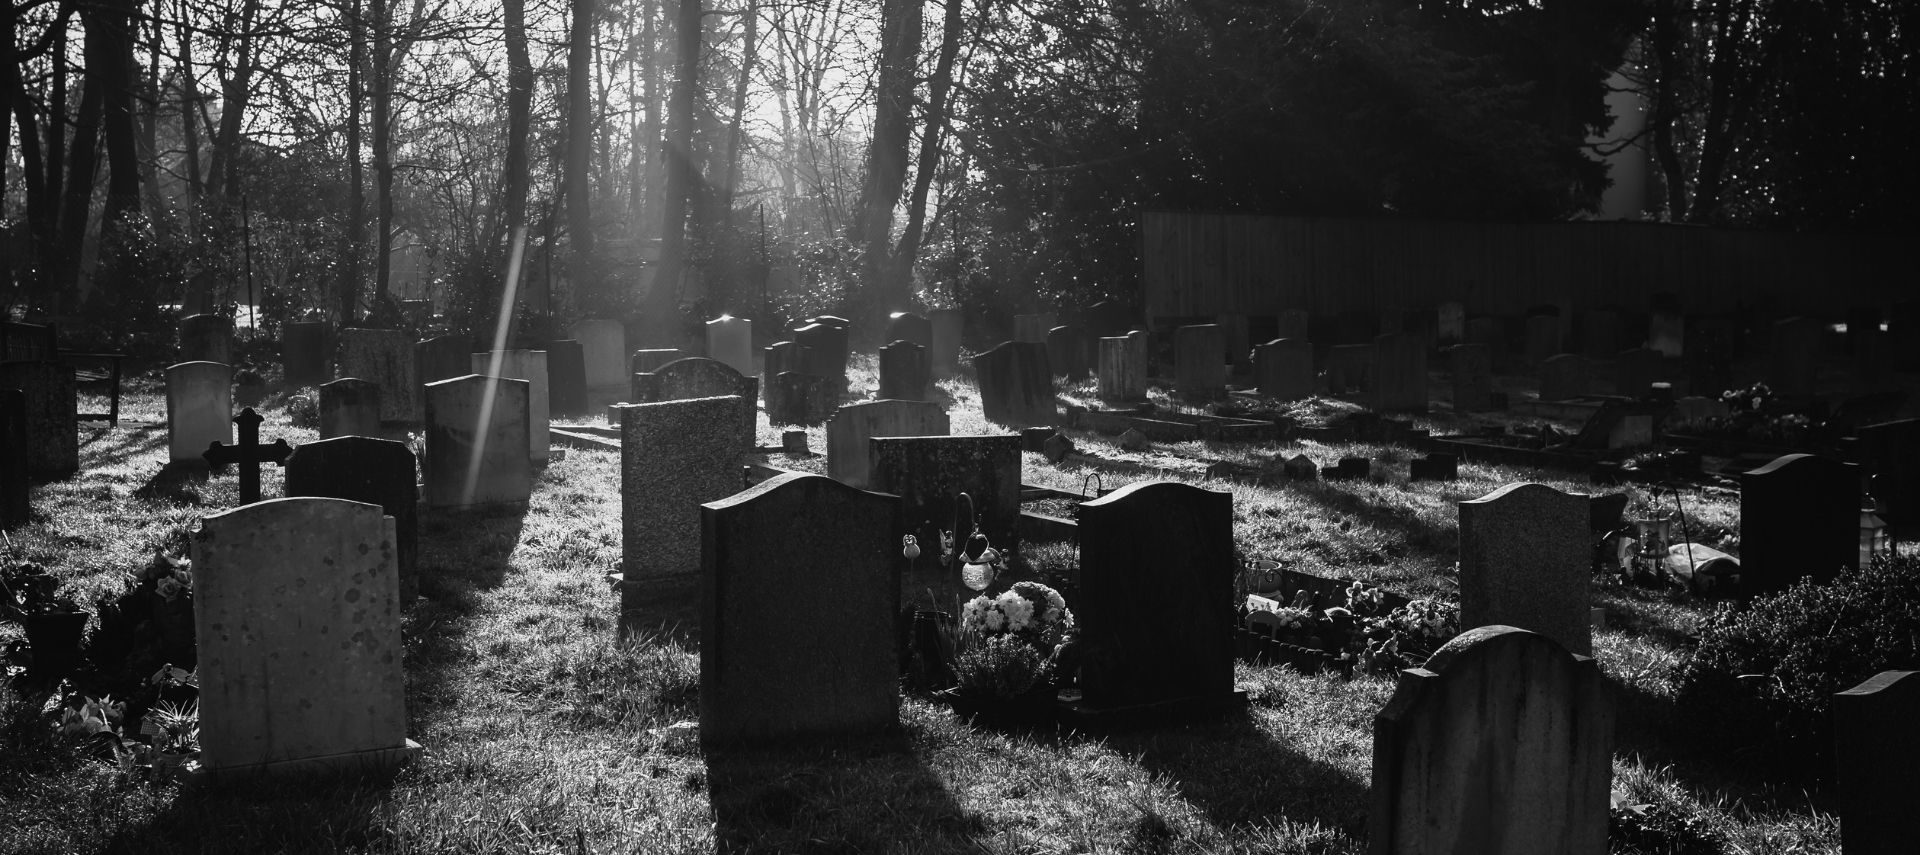 Black and white image of a cemetary with sun rays shining down